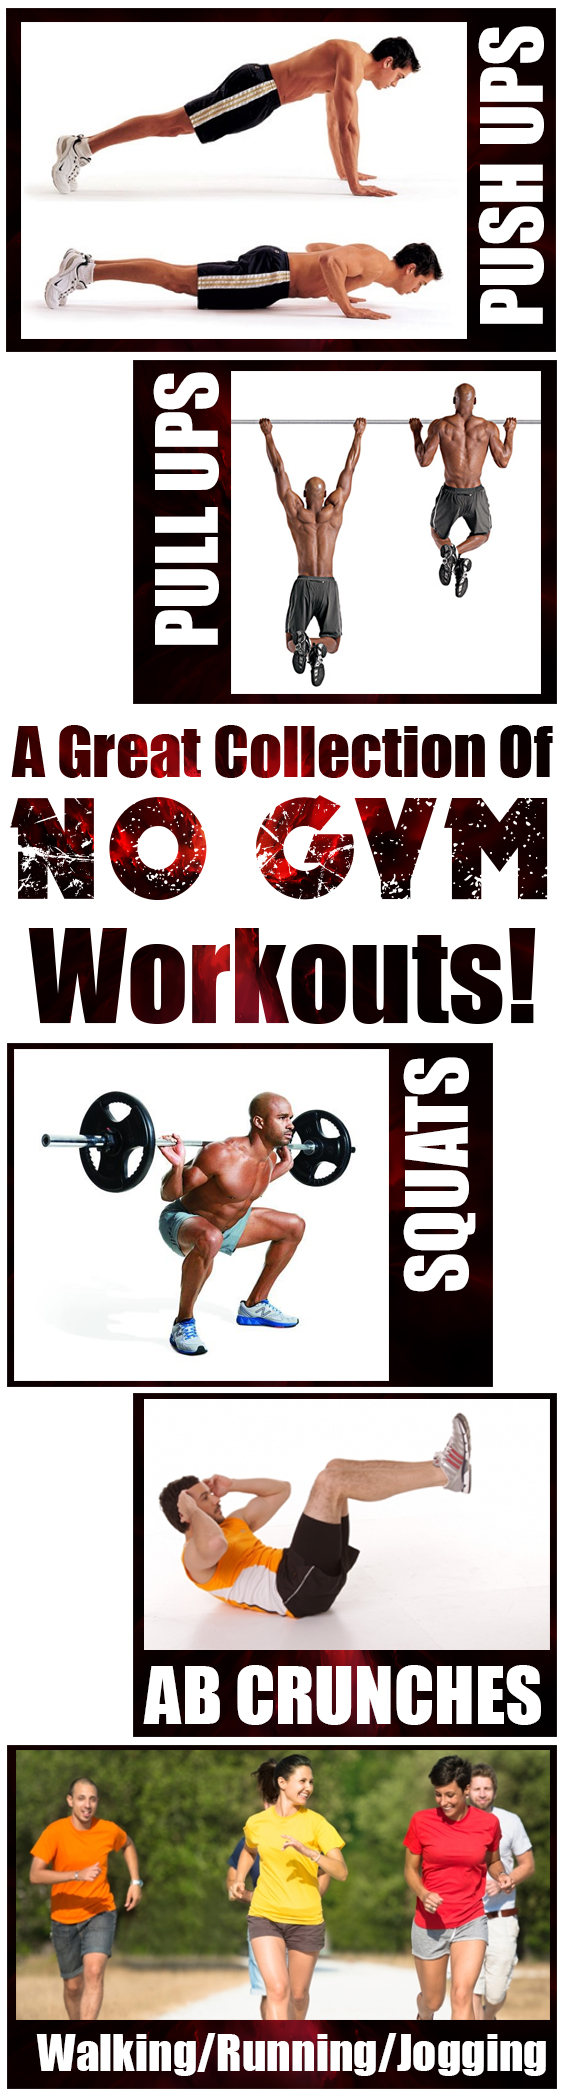 a-great-collection-of-no-gym-workouts